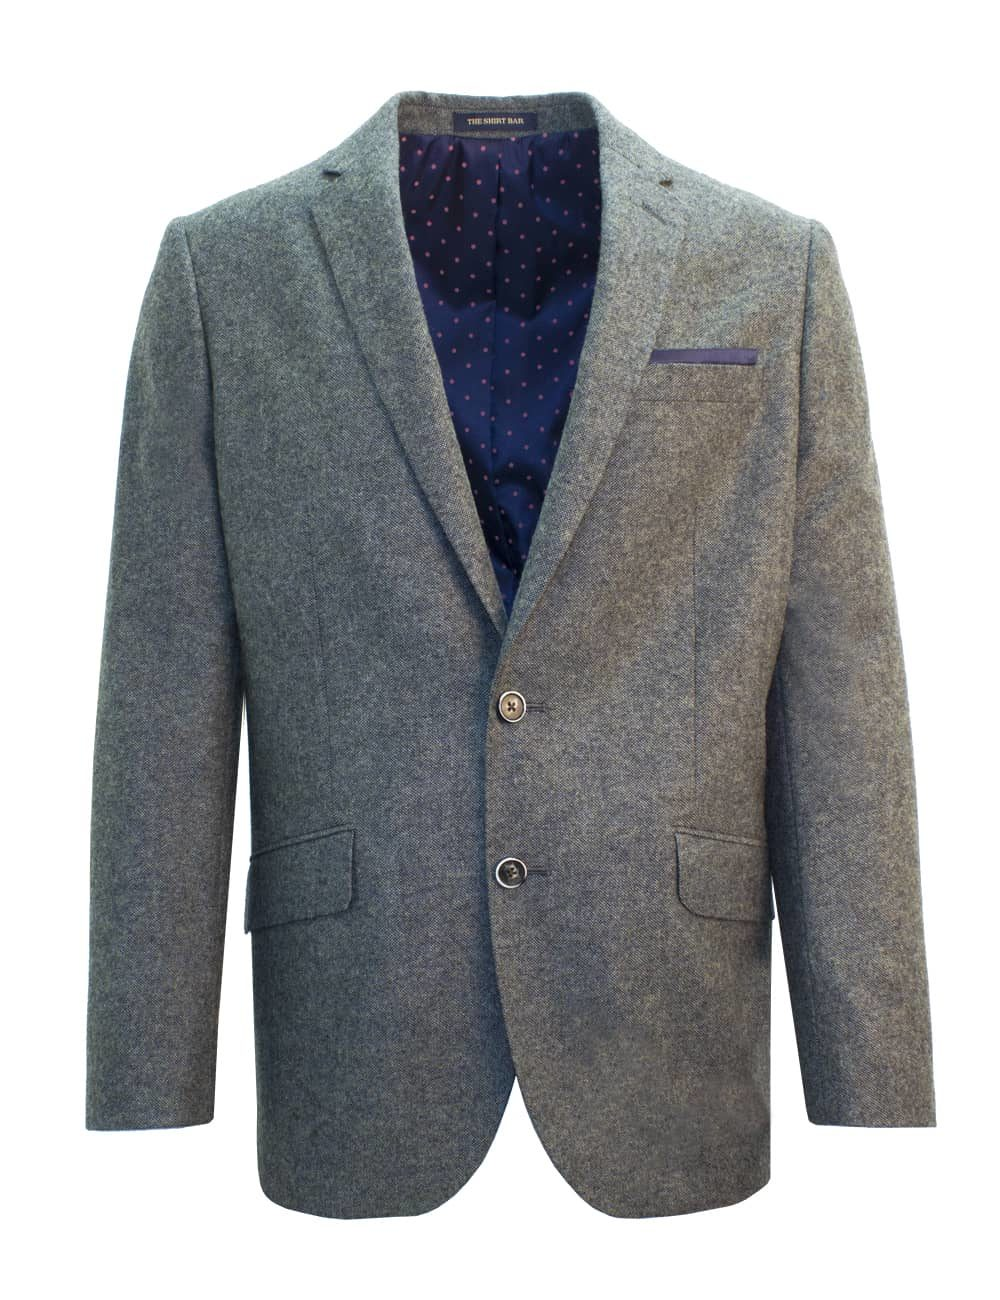 Classic Fit Wool Blend Charcoal Grey Single Breasted Blazer S2B5.2